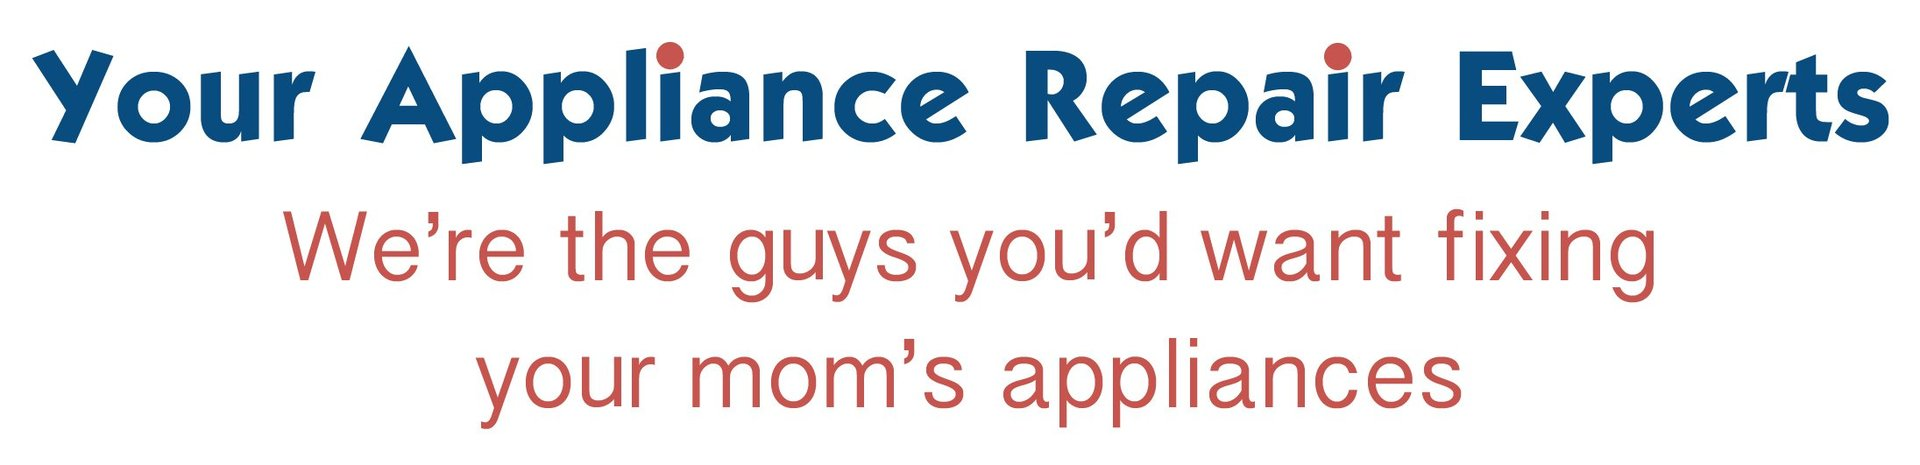 Your Appliance Experts., We're the appliance professional choice in Overland Park, Olathe and surrounding areas.